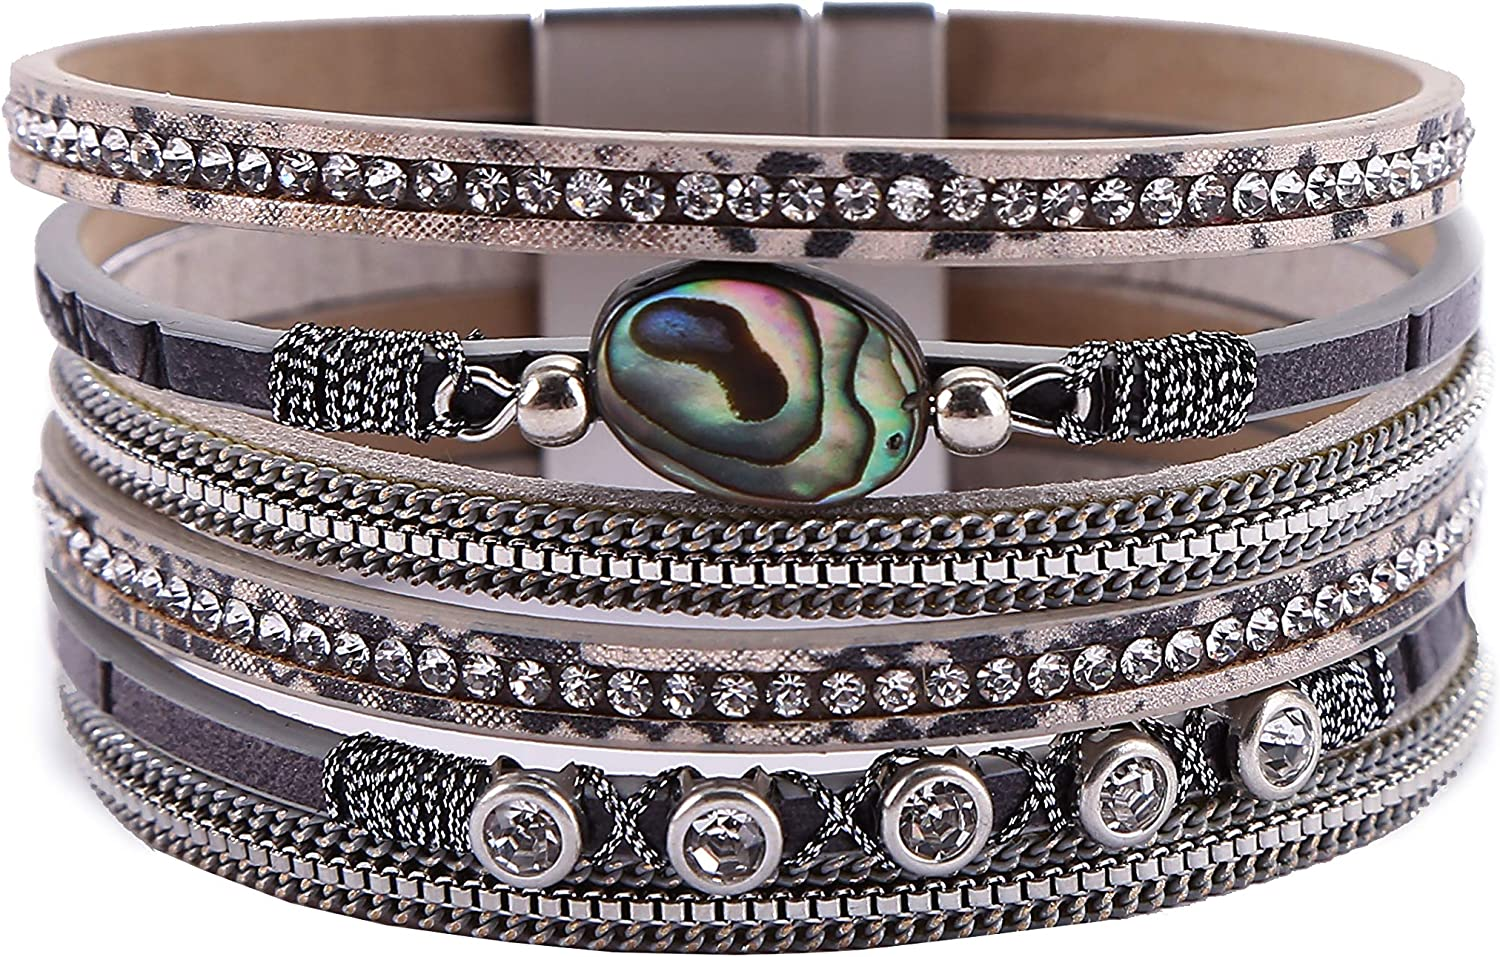 AOTOA Leopard Leather Wrap Regular discount Bracelet Cuff Crystal ! Super beauty product restock quality top! Wide Multilayer